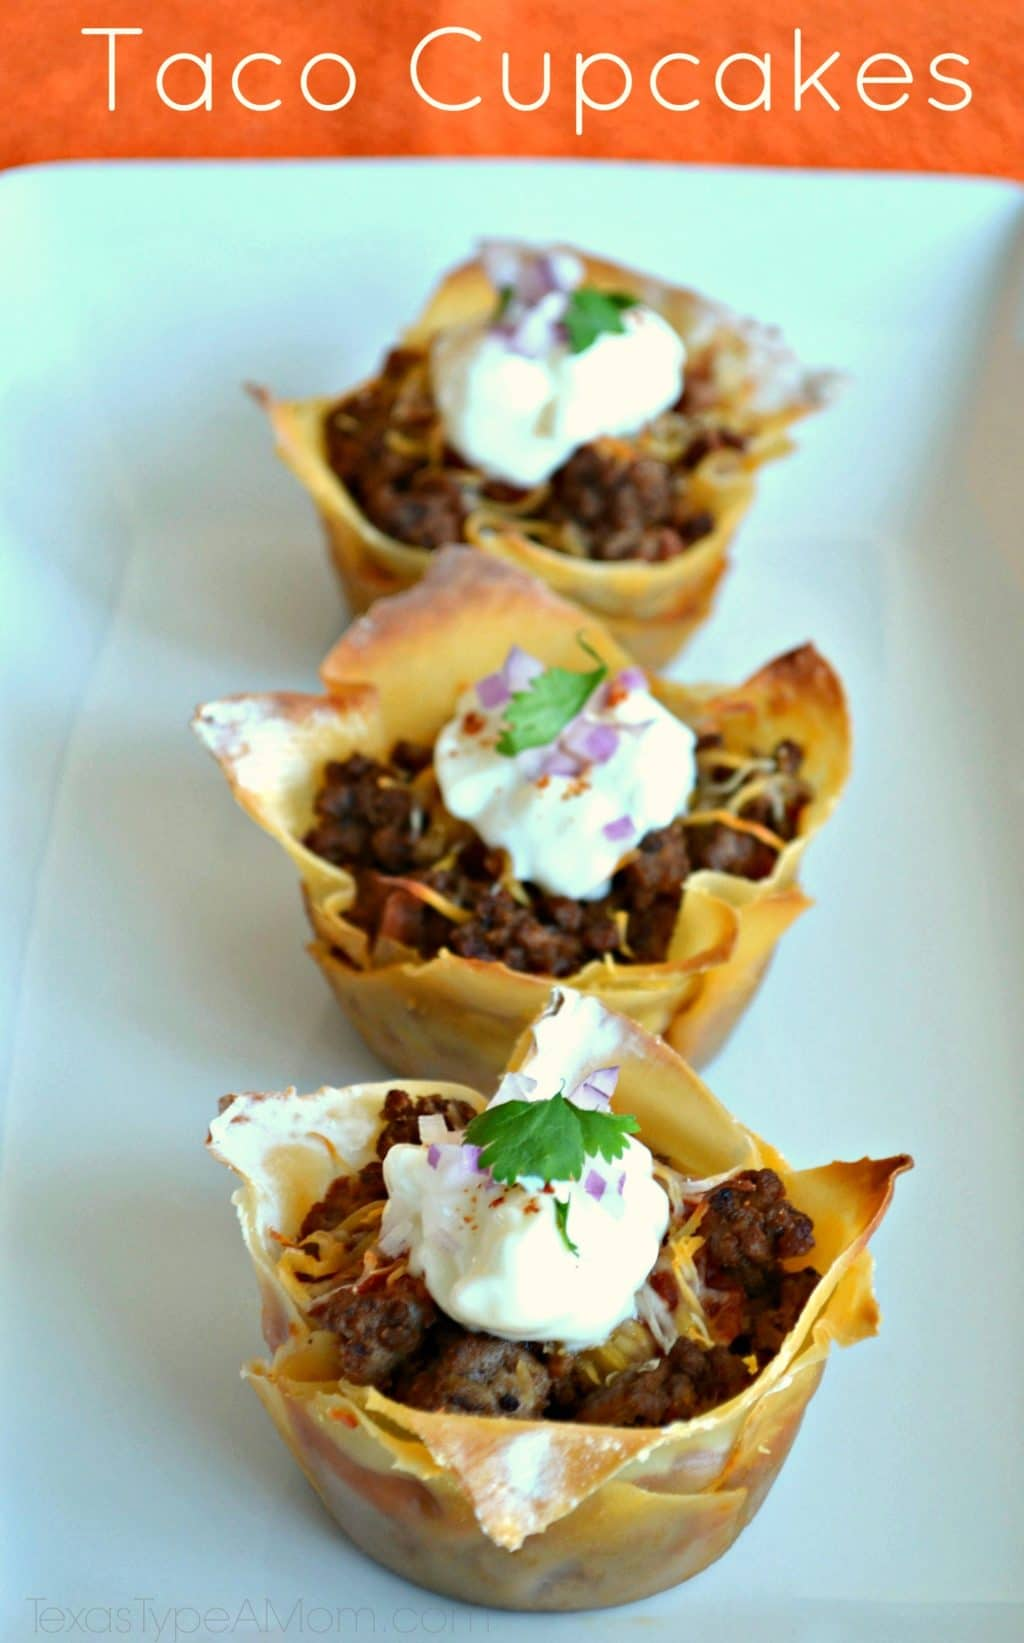 taco cupcakes photo taco cupcakes download by cupcake taco cupcakes ...